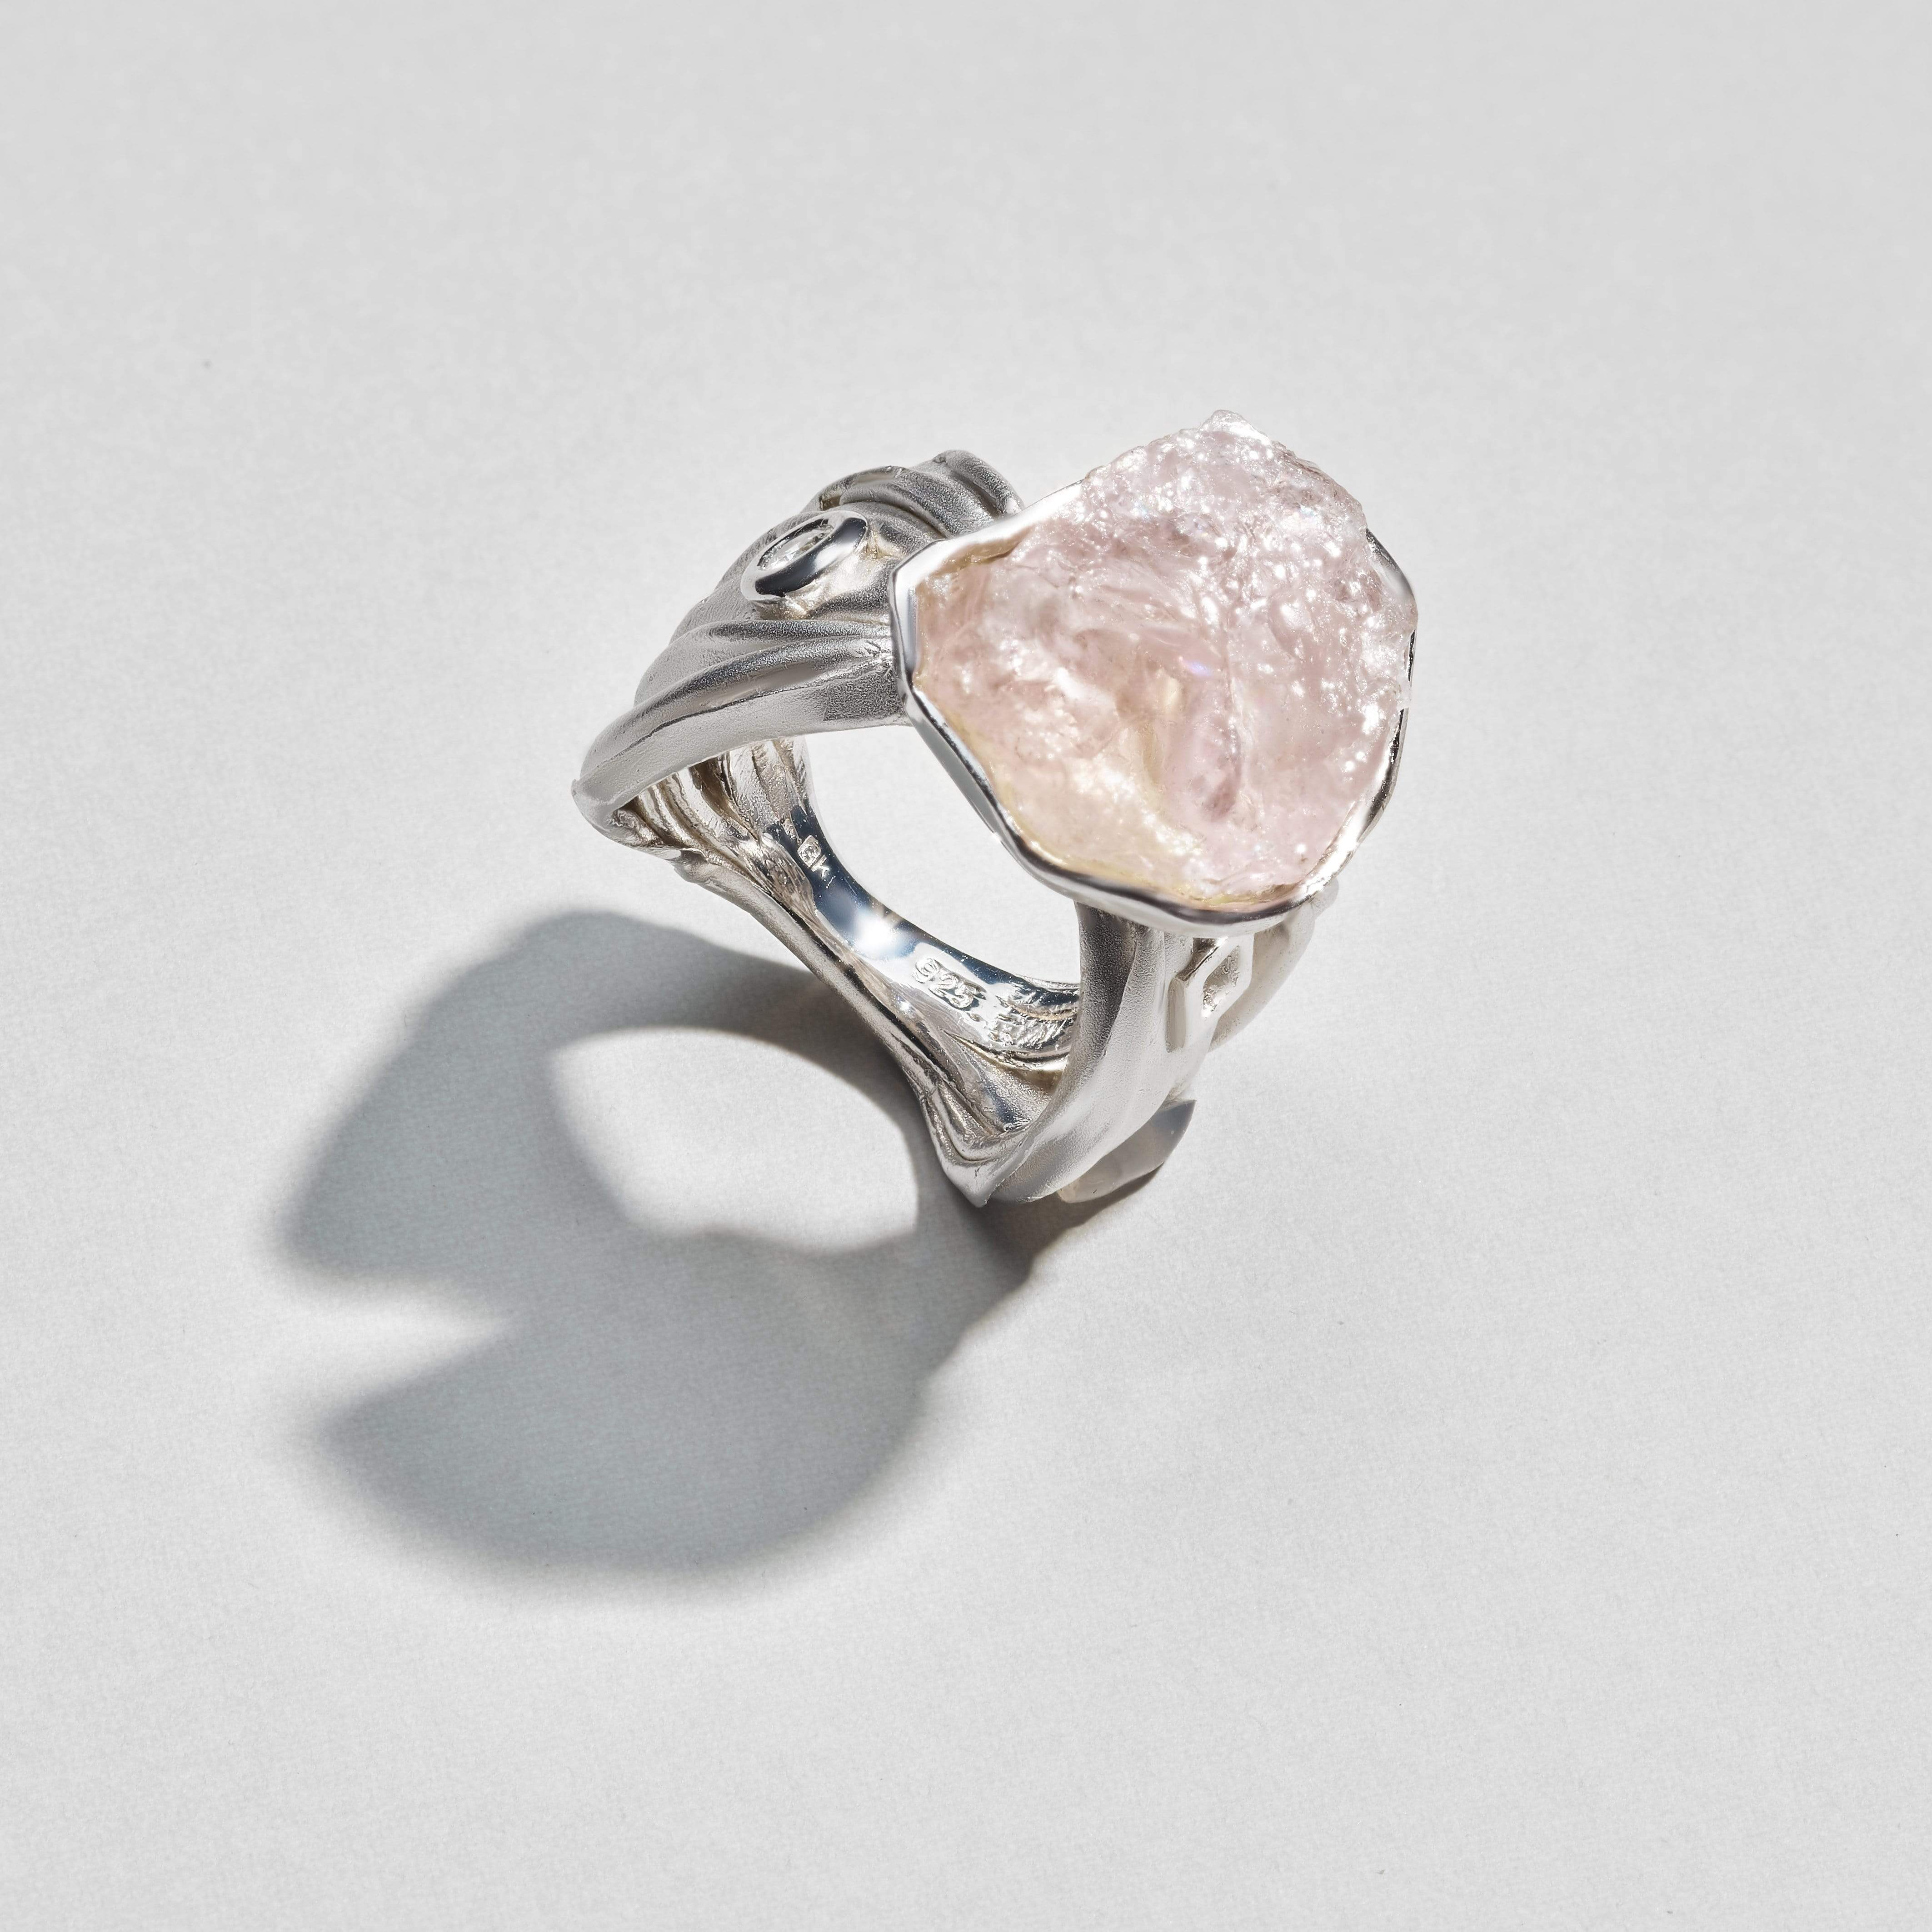 Ellisa Ring, Handmade, Morganite, Rhodium, silver, spo-disabled, StoneColor:White, Style:Statement, Topaz, Type:LargeSoloStone Ring